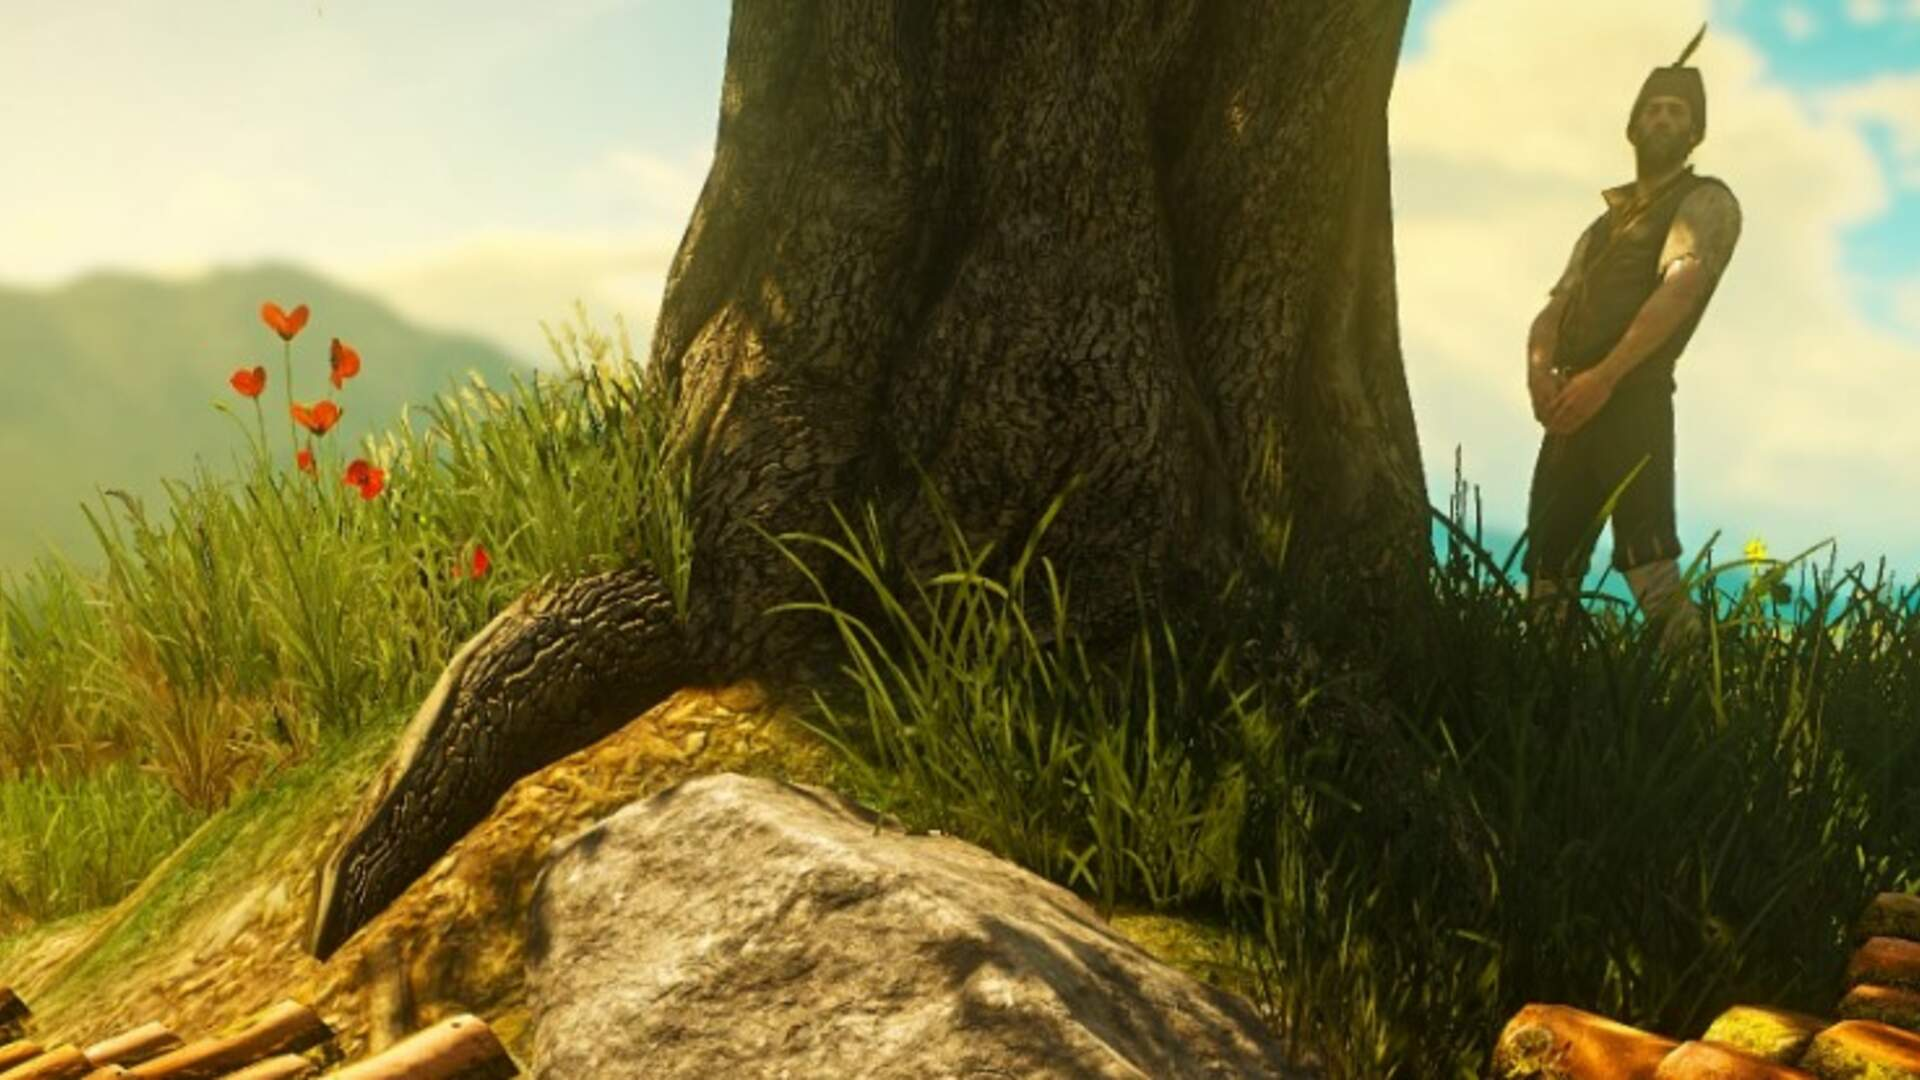 The Witcher 3 HD Rework Mod Gives the Game's Graphics a Big Overhaul